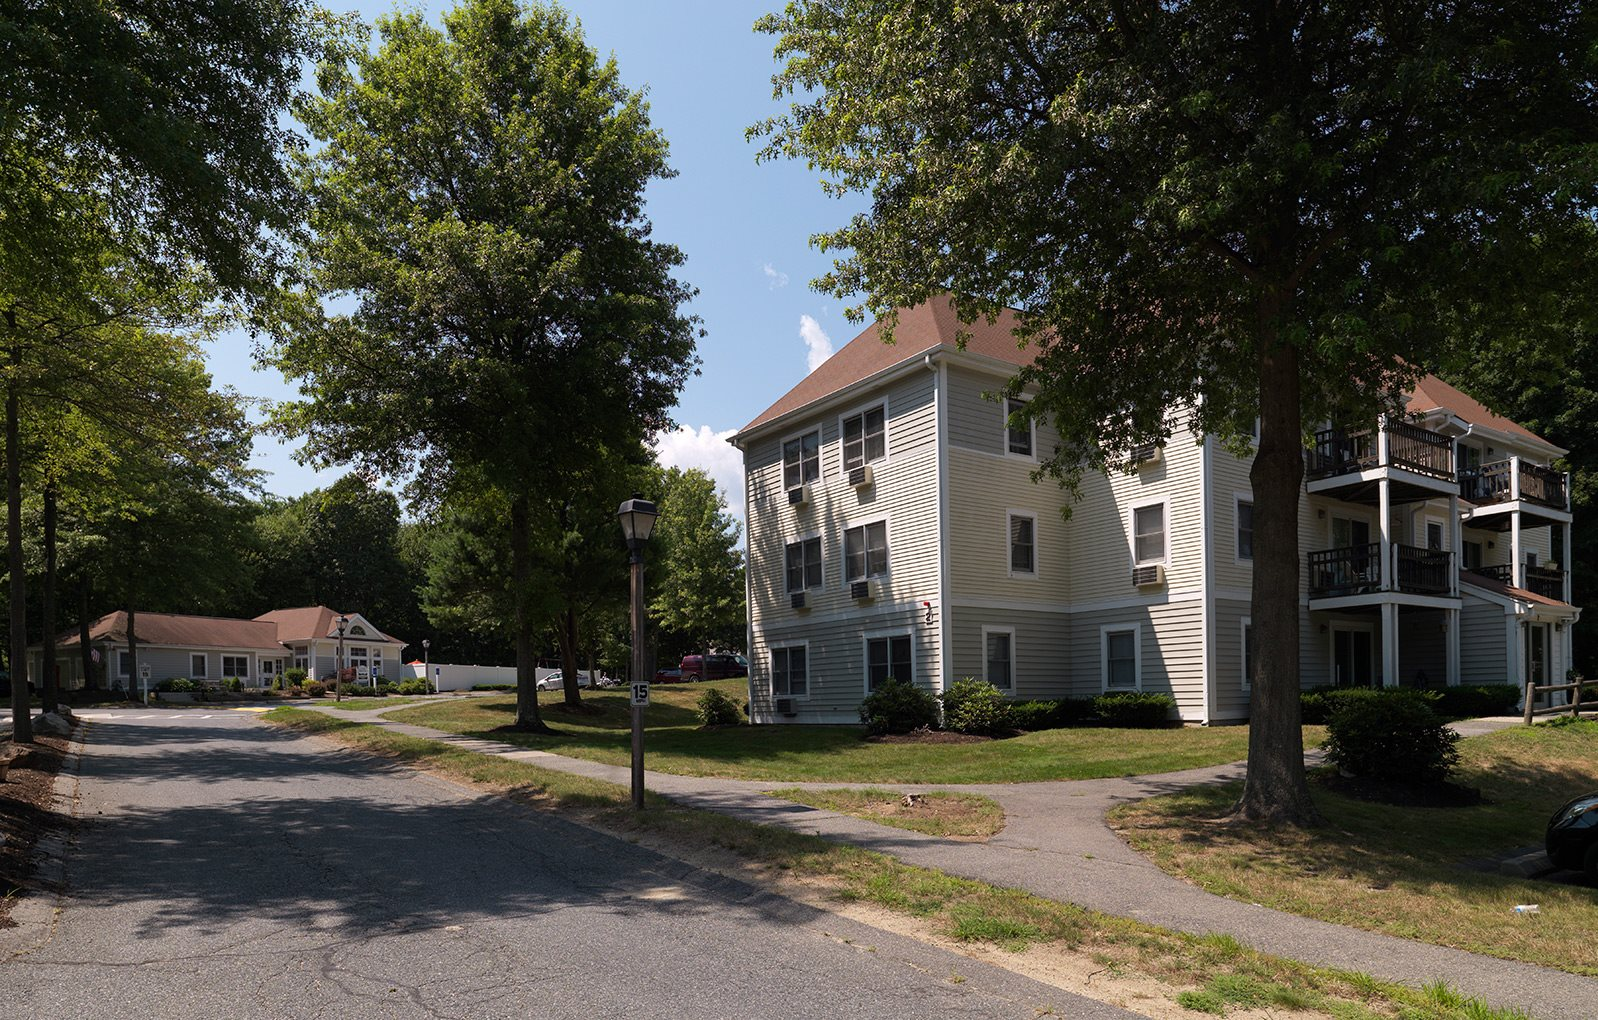 Littlebrook Apartments in Hudson, MA